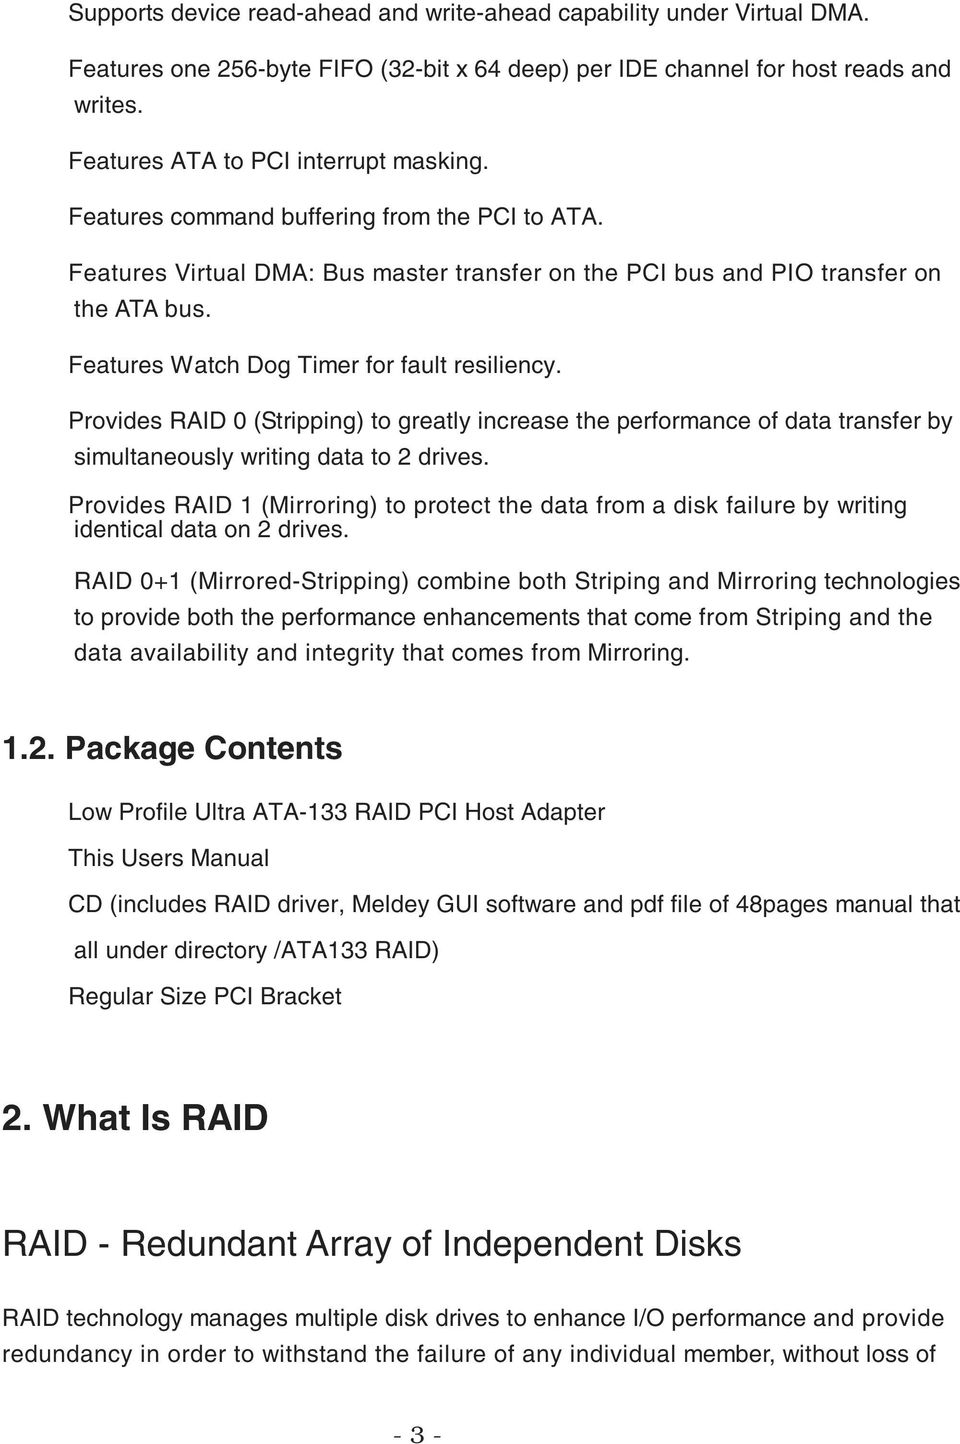 Provides RAID 0 (Stripping) to greatly increase the performance of data transfer by simultaneously writing data to 2 drives.